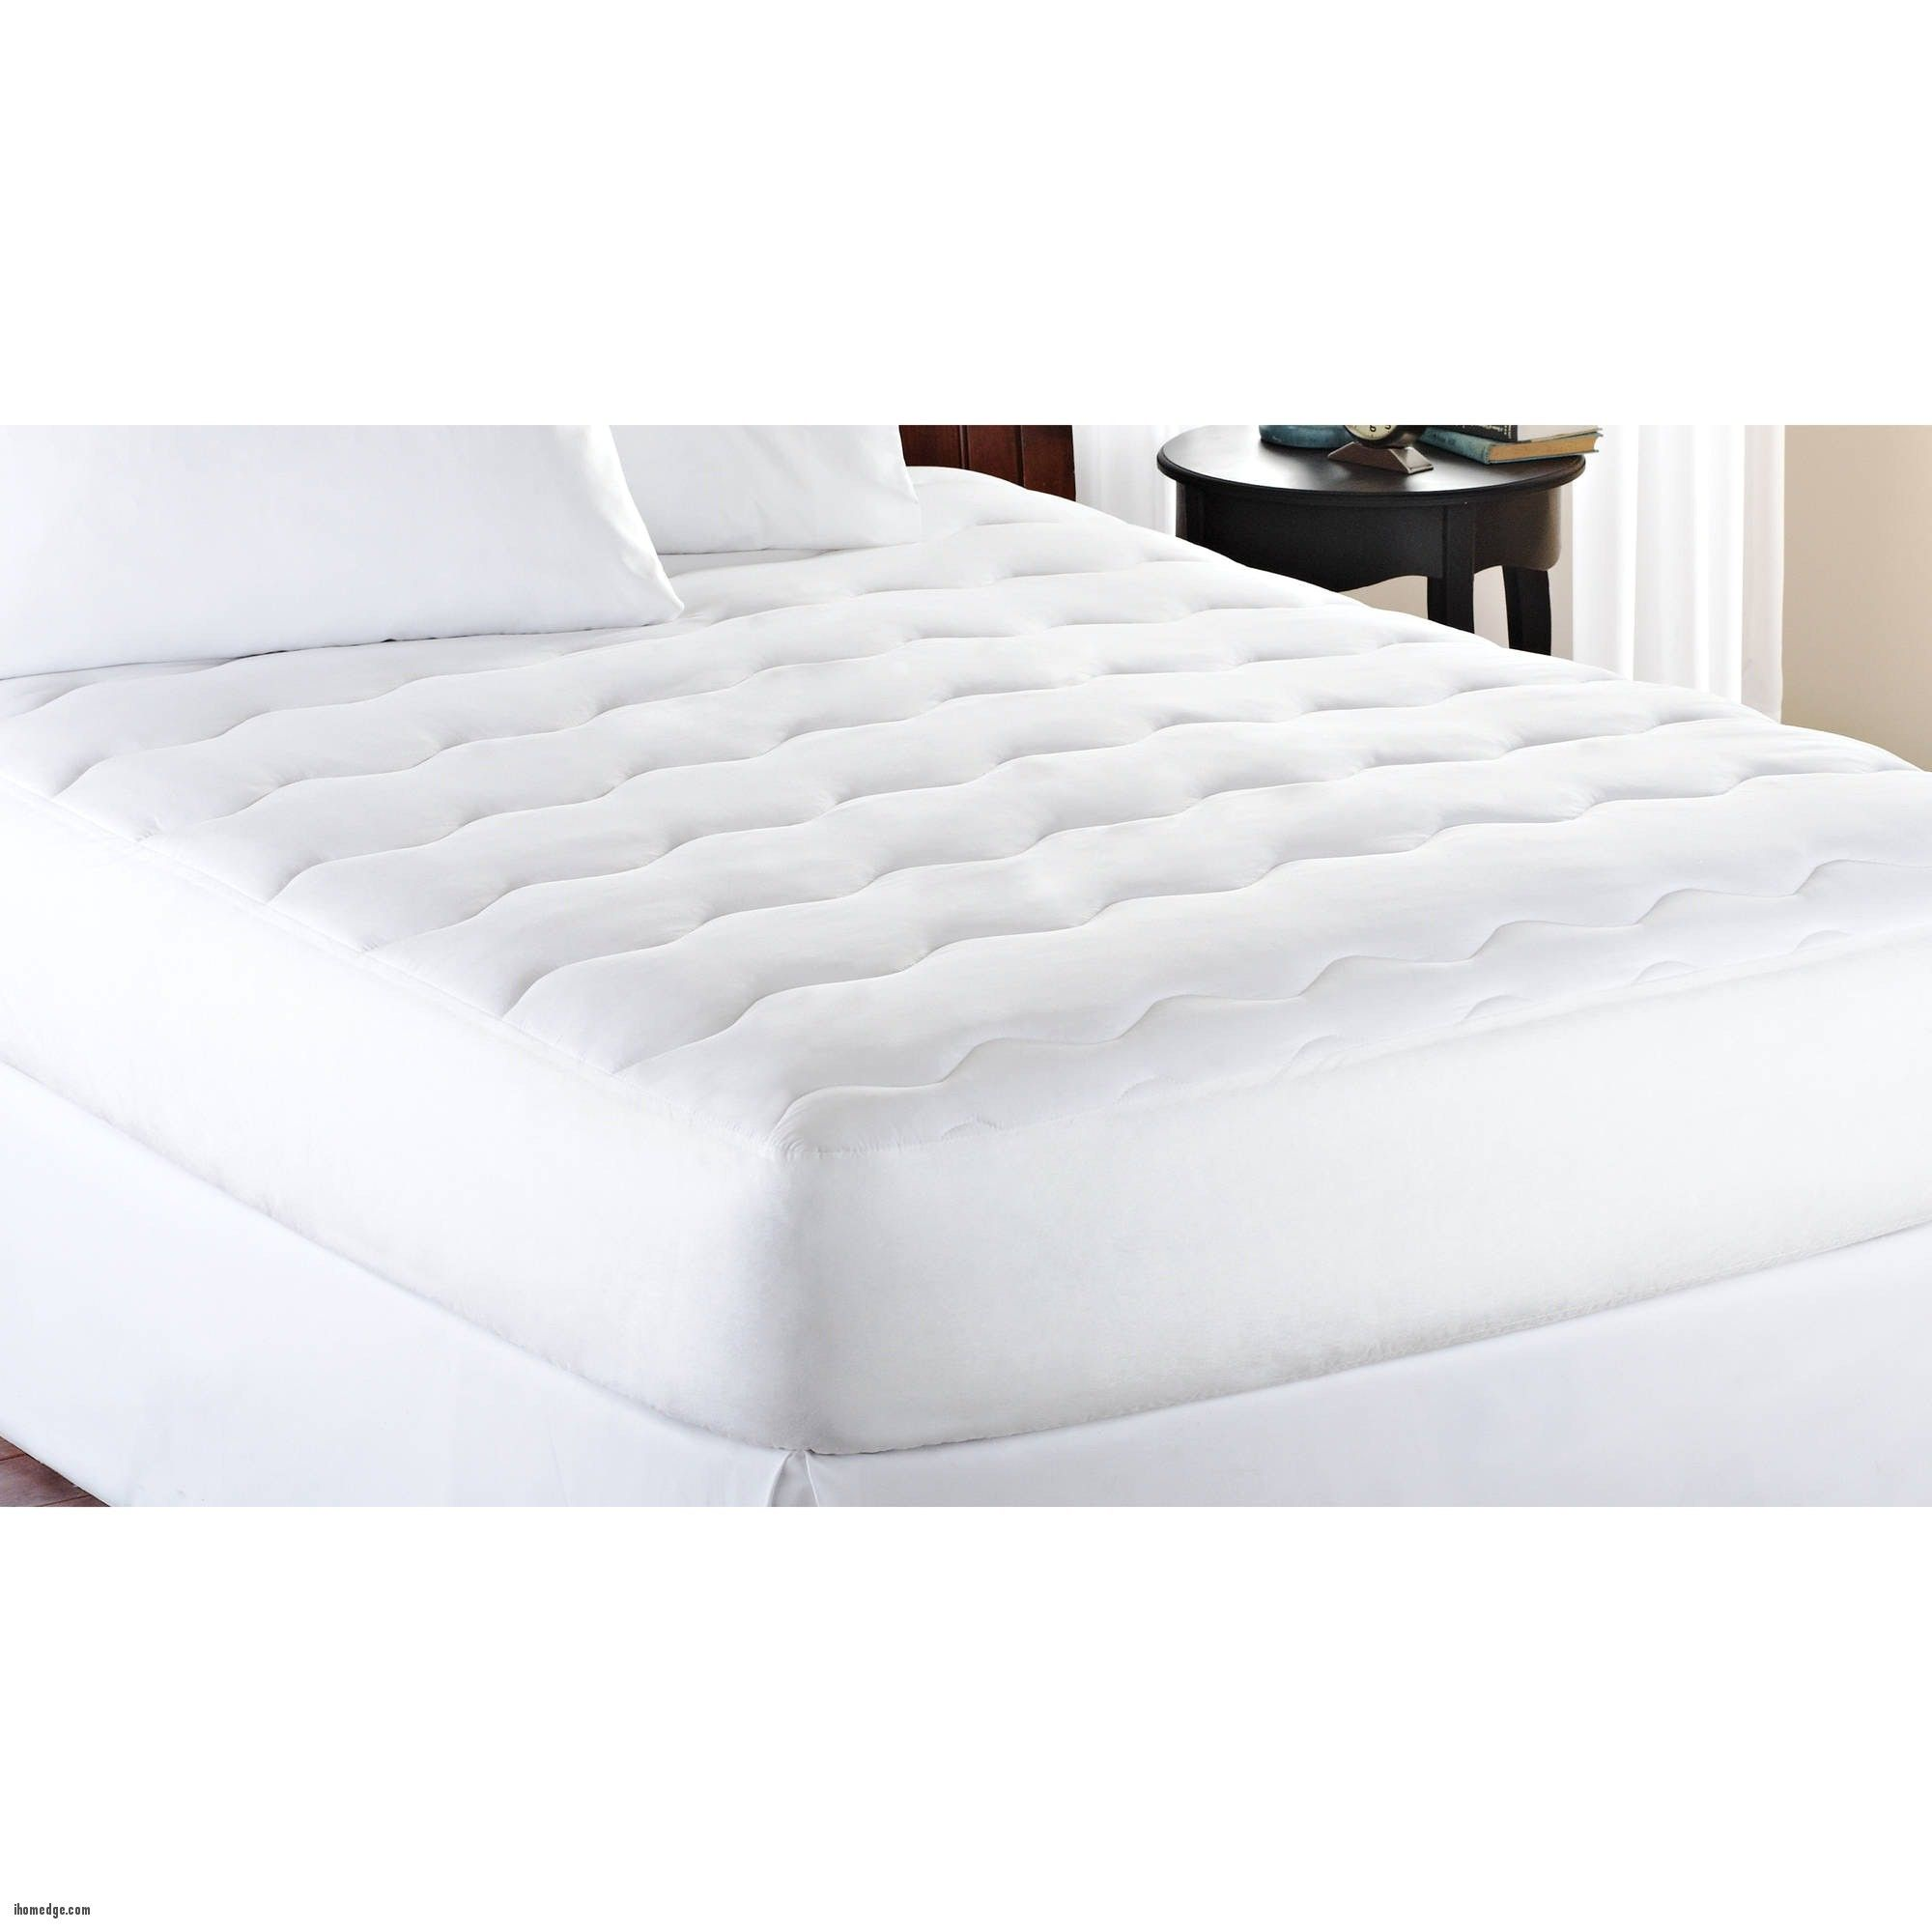 nice unique mattress twin size mattress pads toppers twin size at walmart modern home decoration